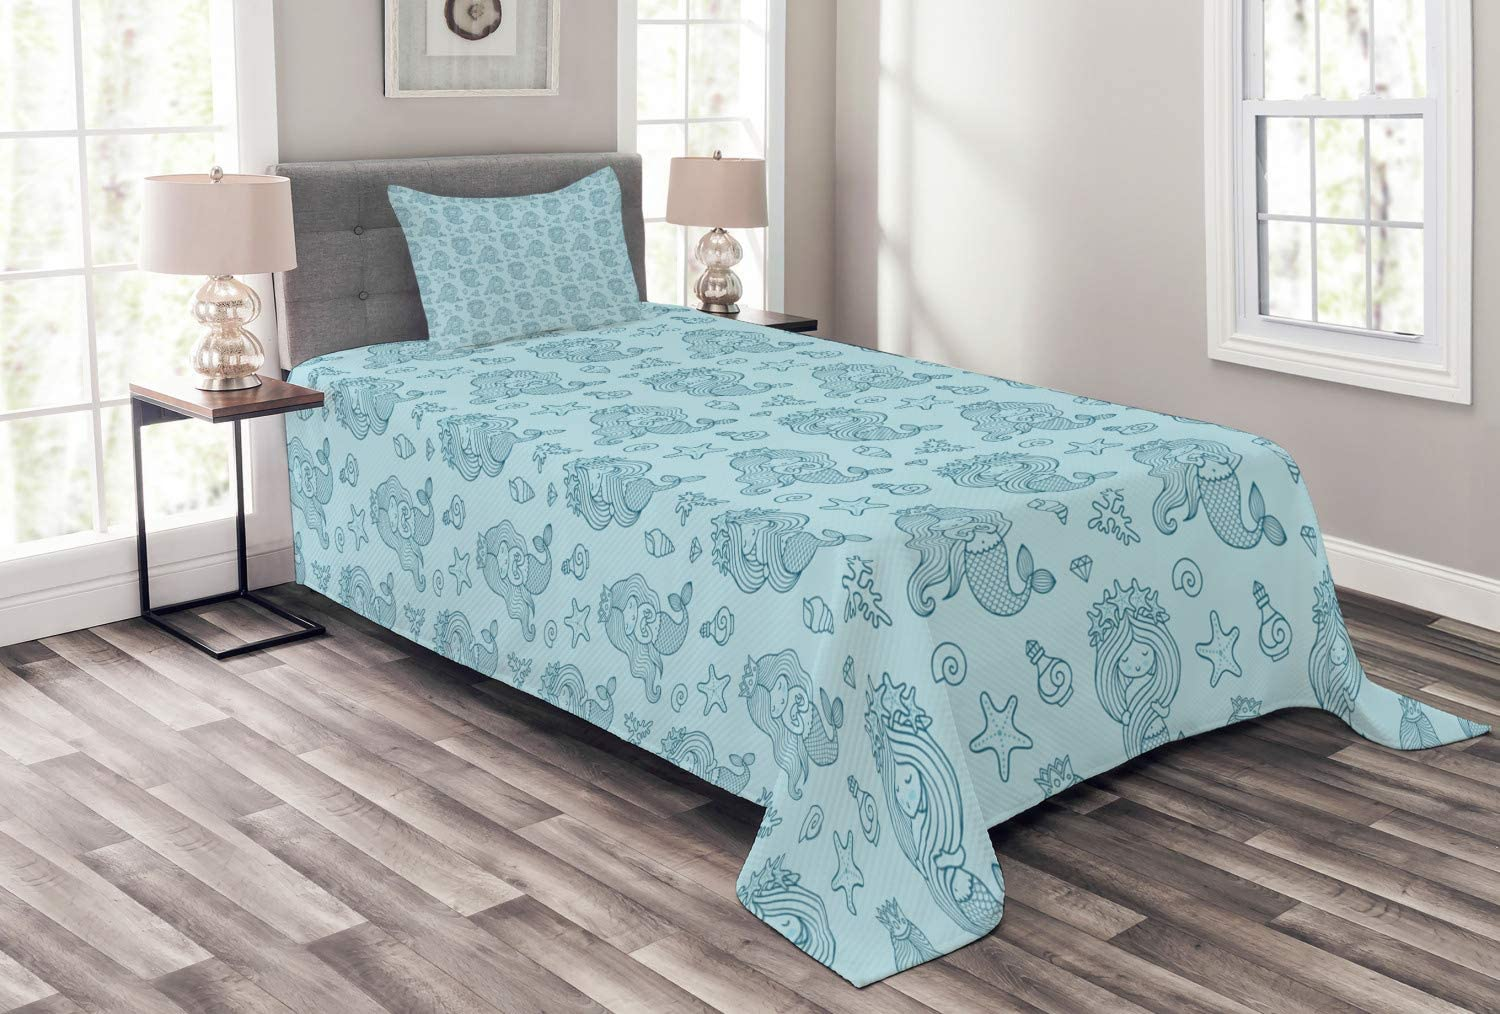 Great interest Lunarable Mermaid Bedspread Repetitive Marine Girl with Tail Max 80% OFF of